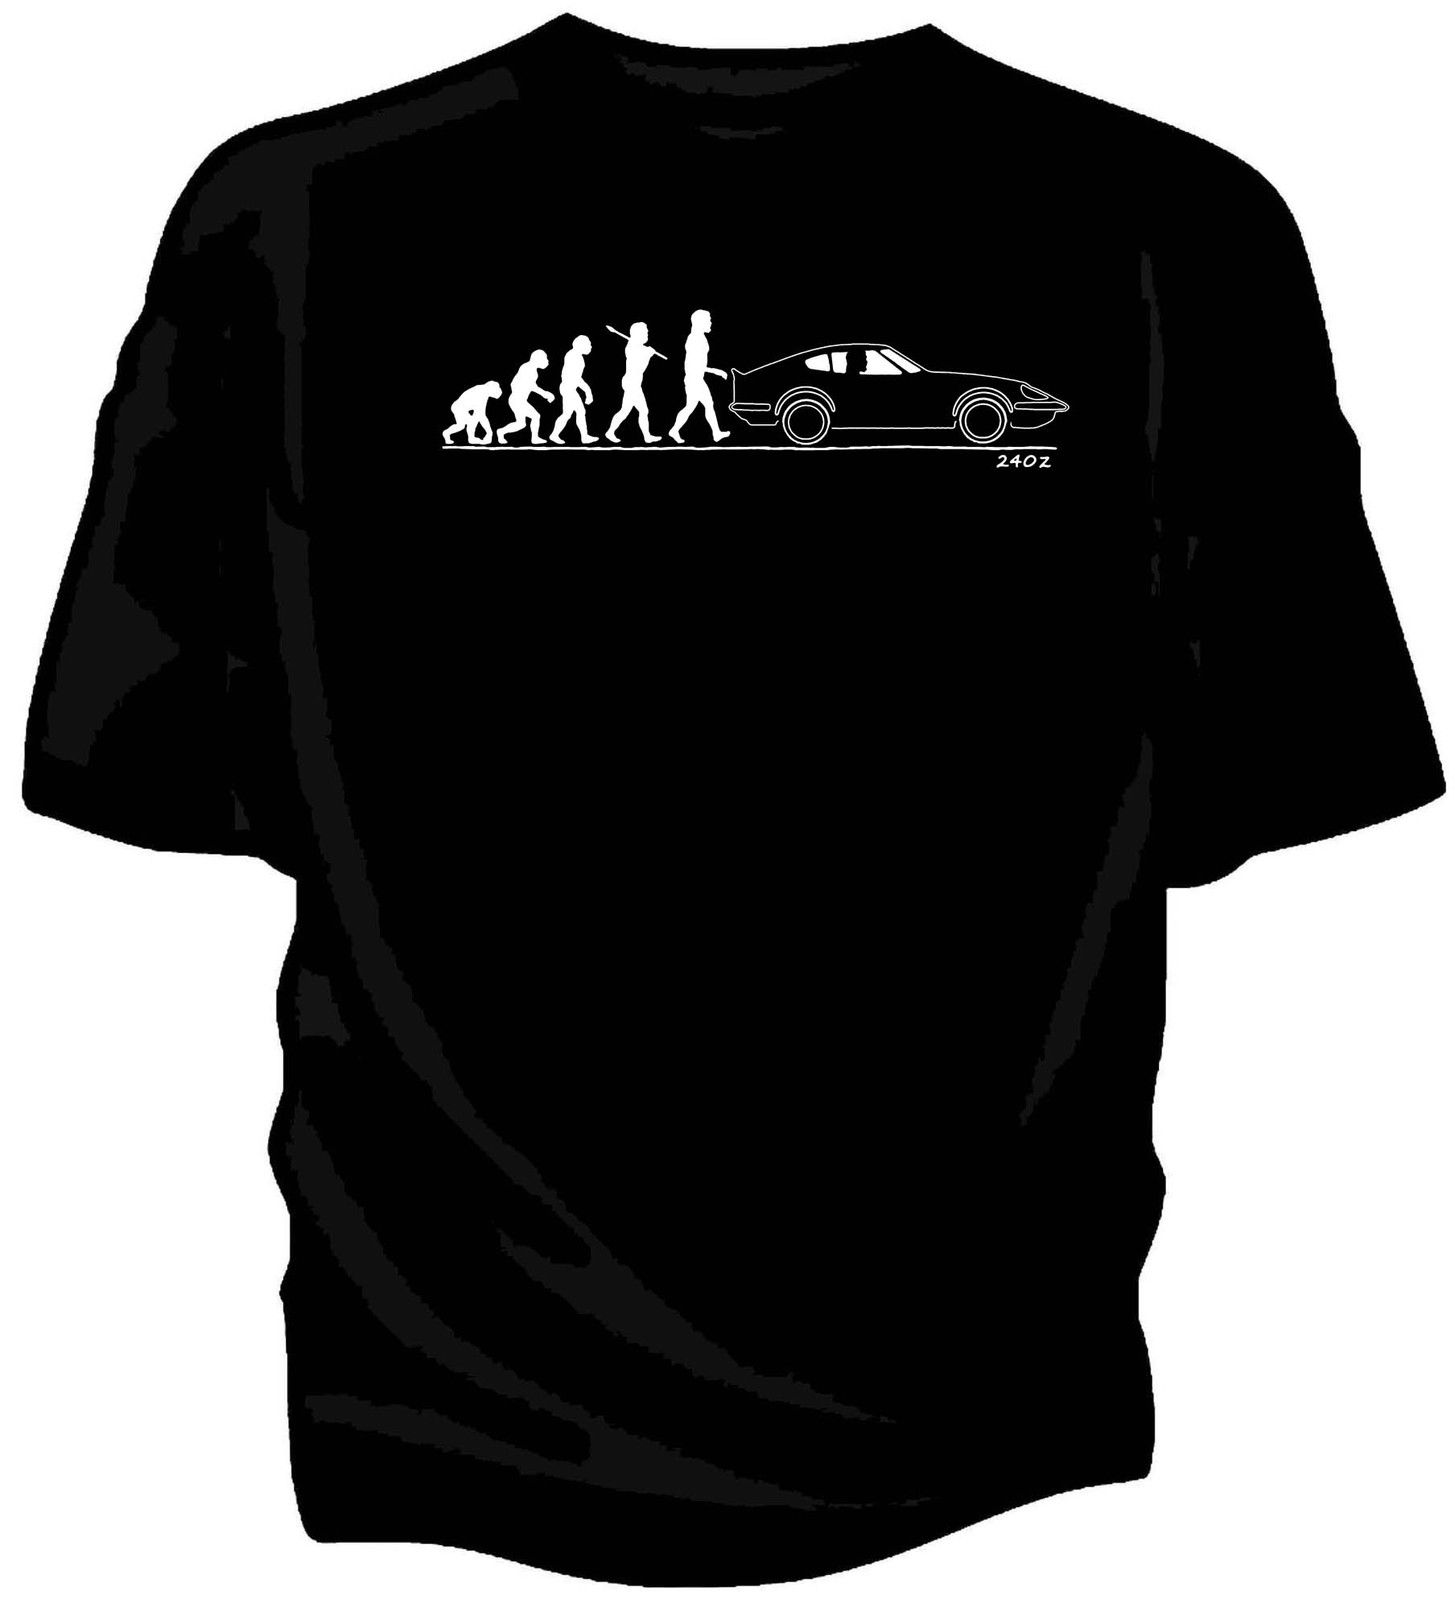 Hot Selling Top Fitness Male Evolution of Man Classic Car T-Shirt Classic Japanese Car Fans <font><b>240Z</b></font> Homme Short Sleeve image